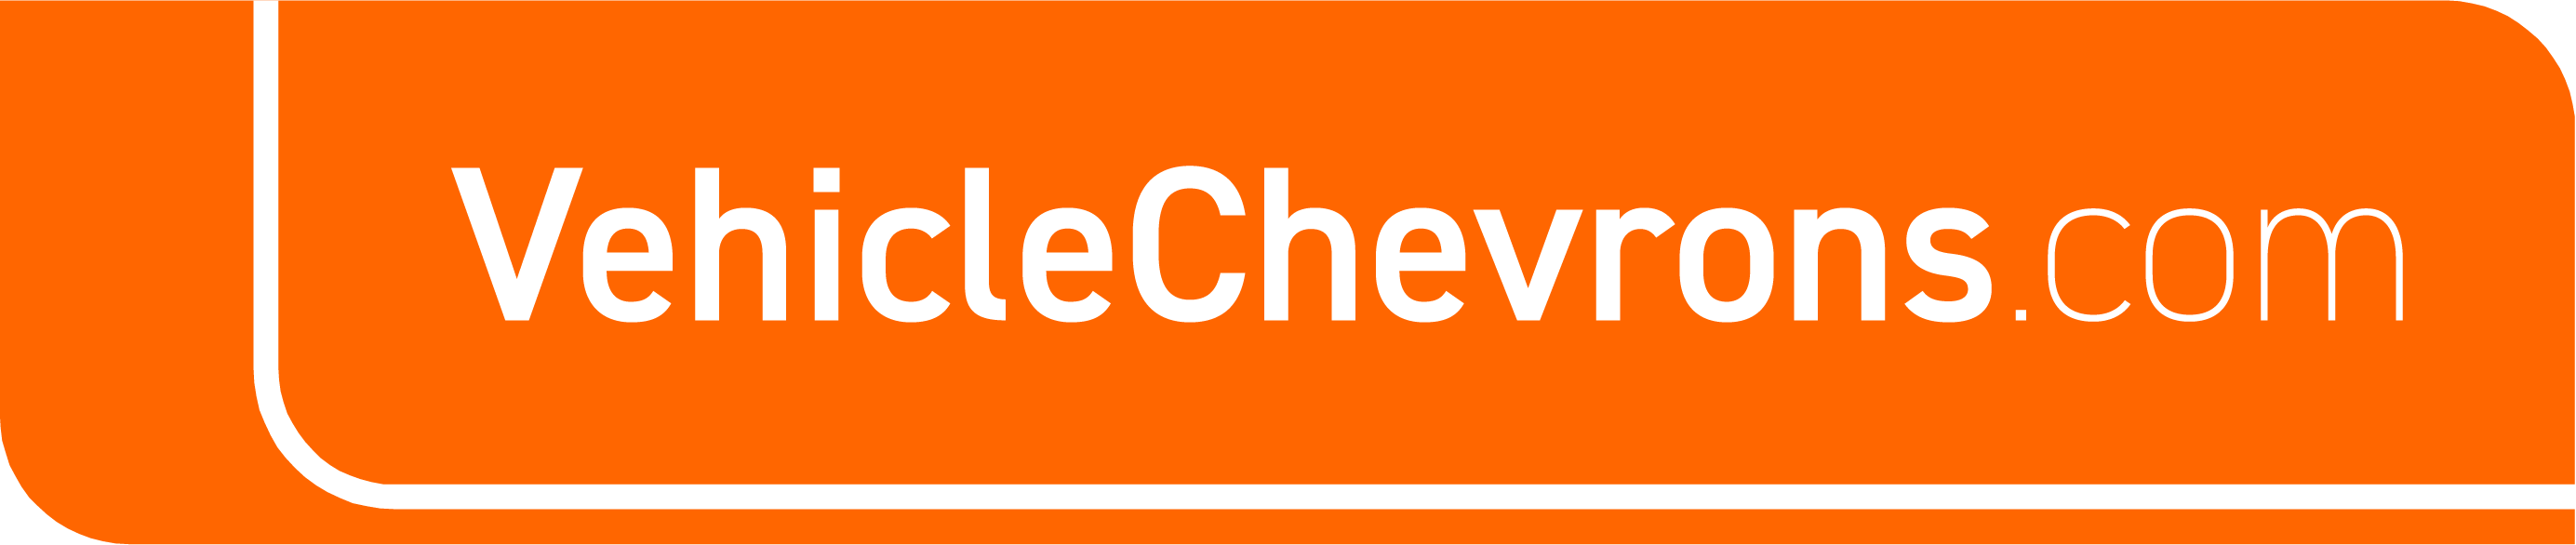 VehicleChevrons.com